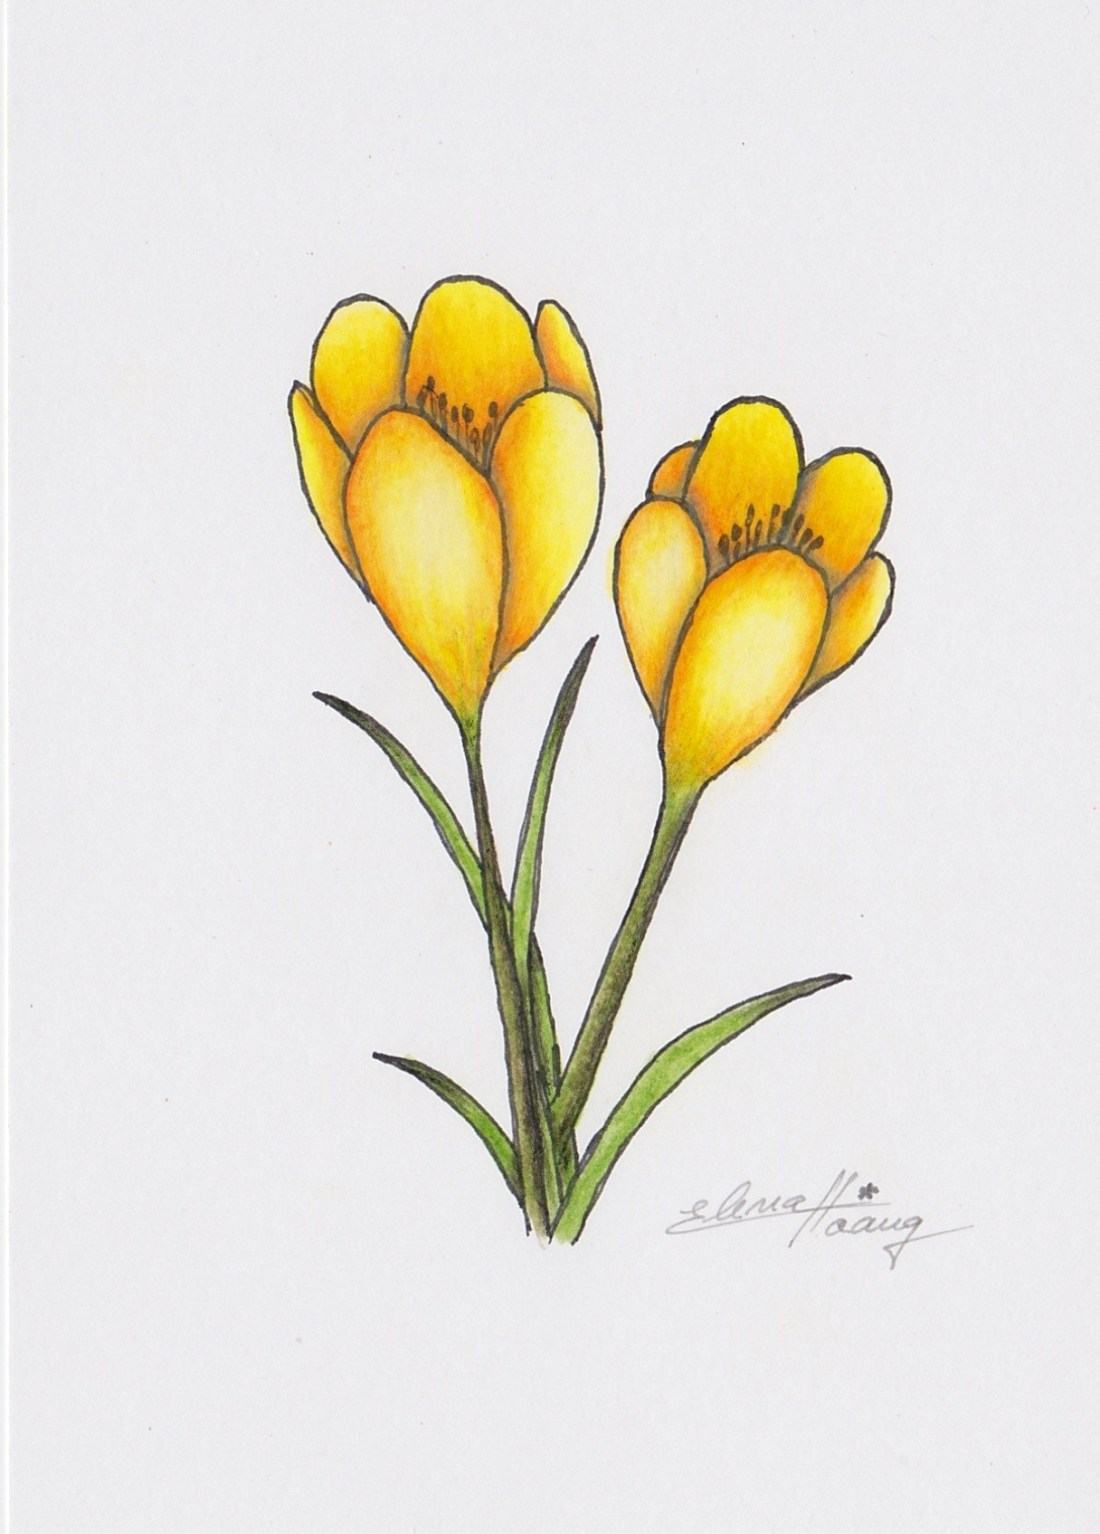 008 - Yellow crocus